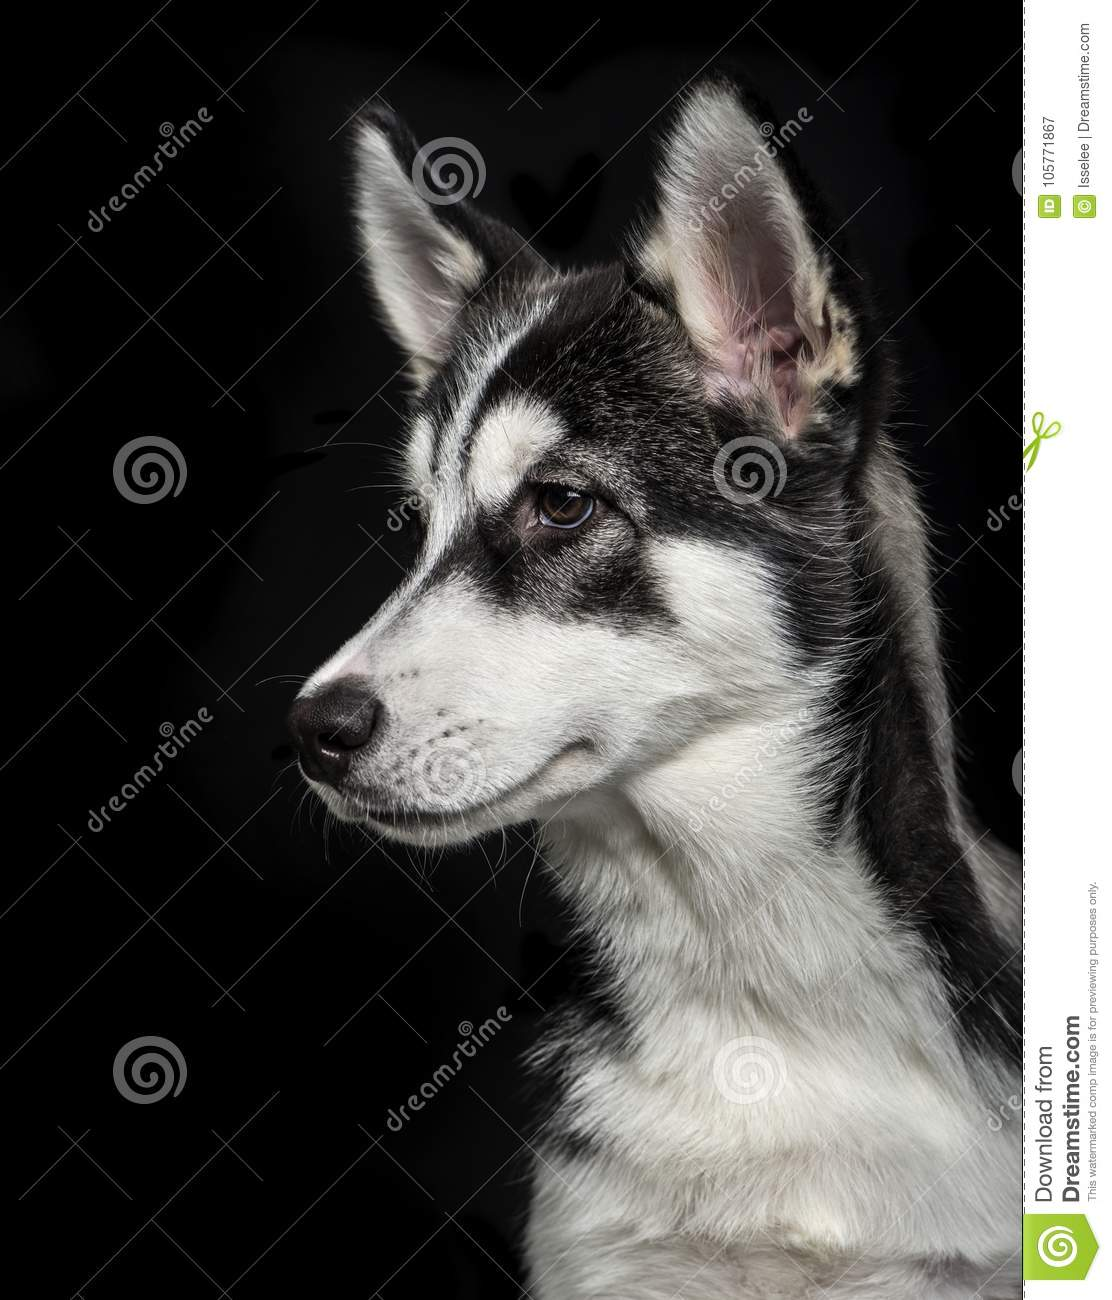 Husky 2 Meses Siberian Husky Puppy 5 Months Old Stock Images Download 108